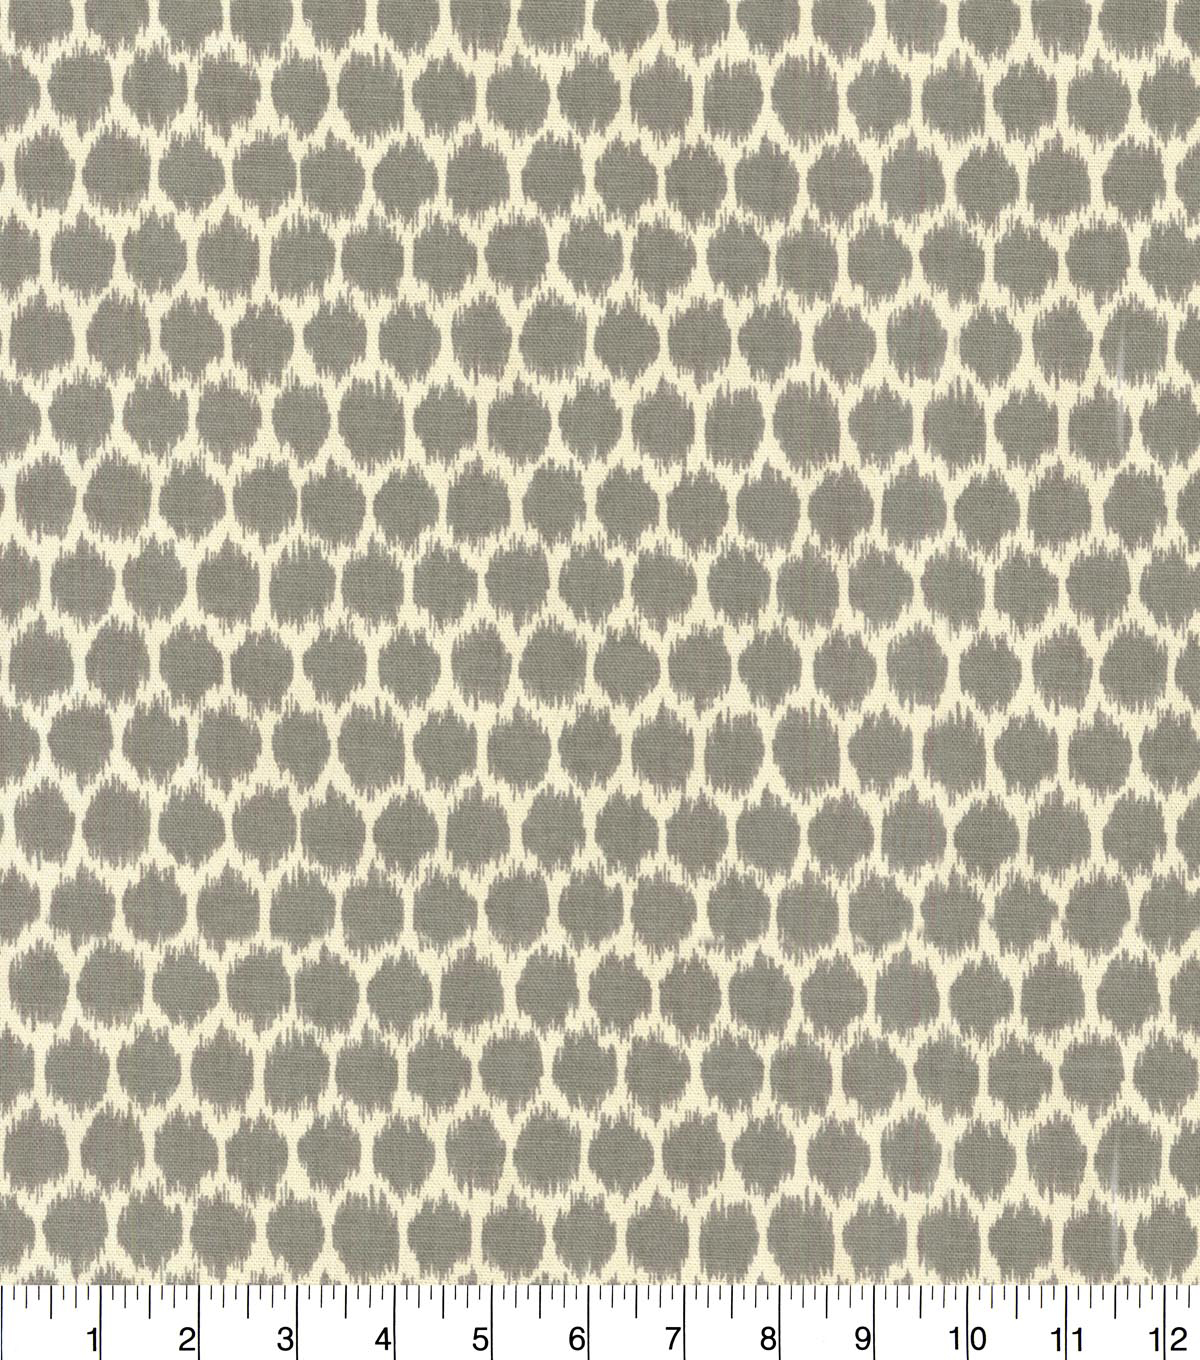 Home Decor 8\u0022x8\u0022 Fabric Swatch-Waverly Seeing Spots SD Graphite